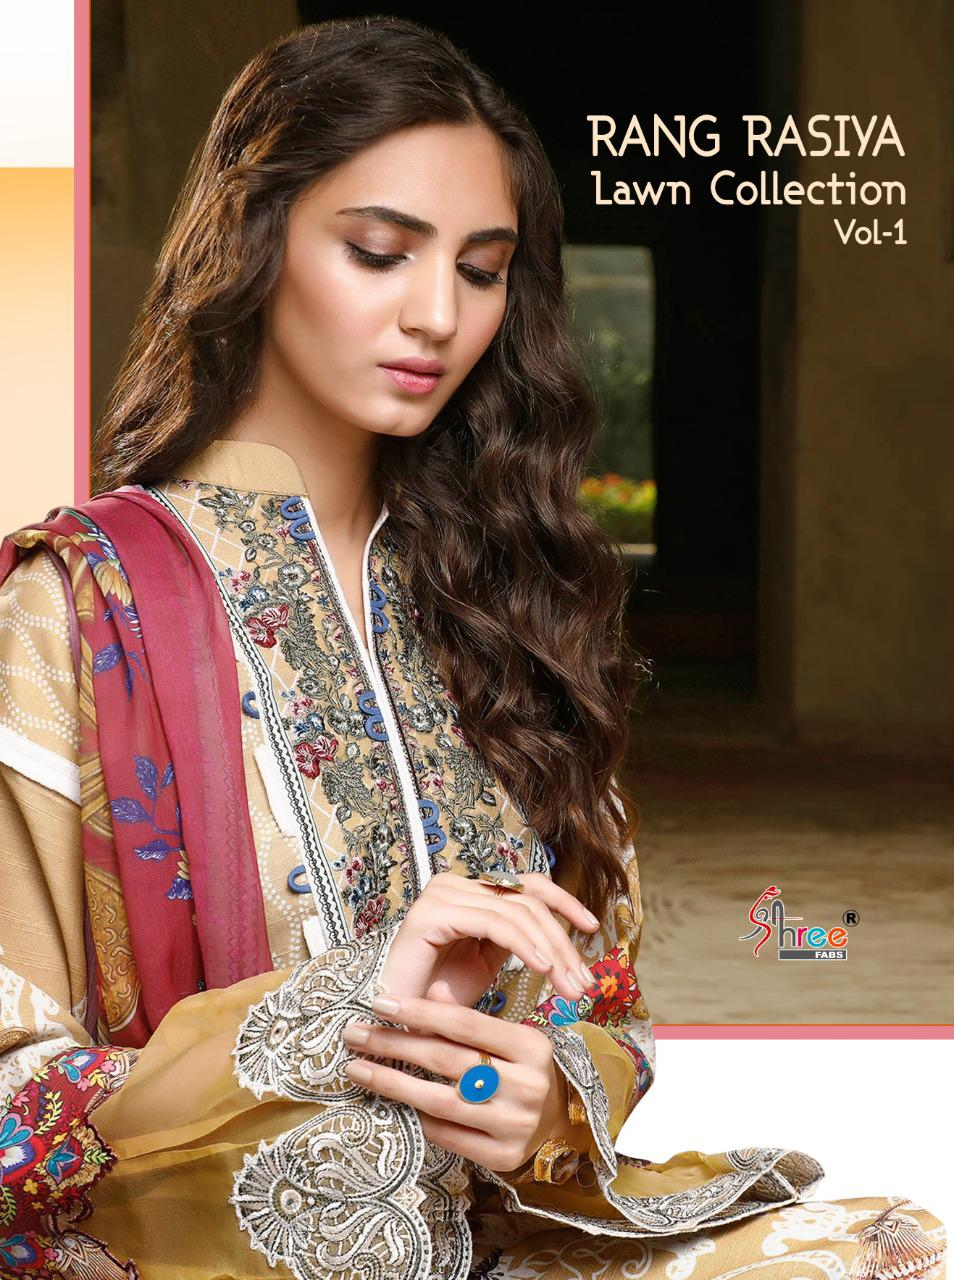 Shree Fab Rangrasiya Lawn Collection-01 Designer Pure Cotton Print With Exclusive Embroidery Work Suits Wholesale